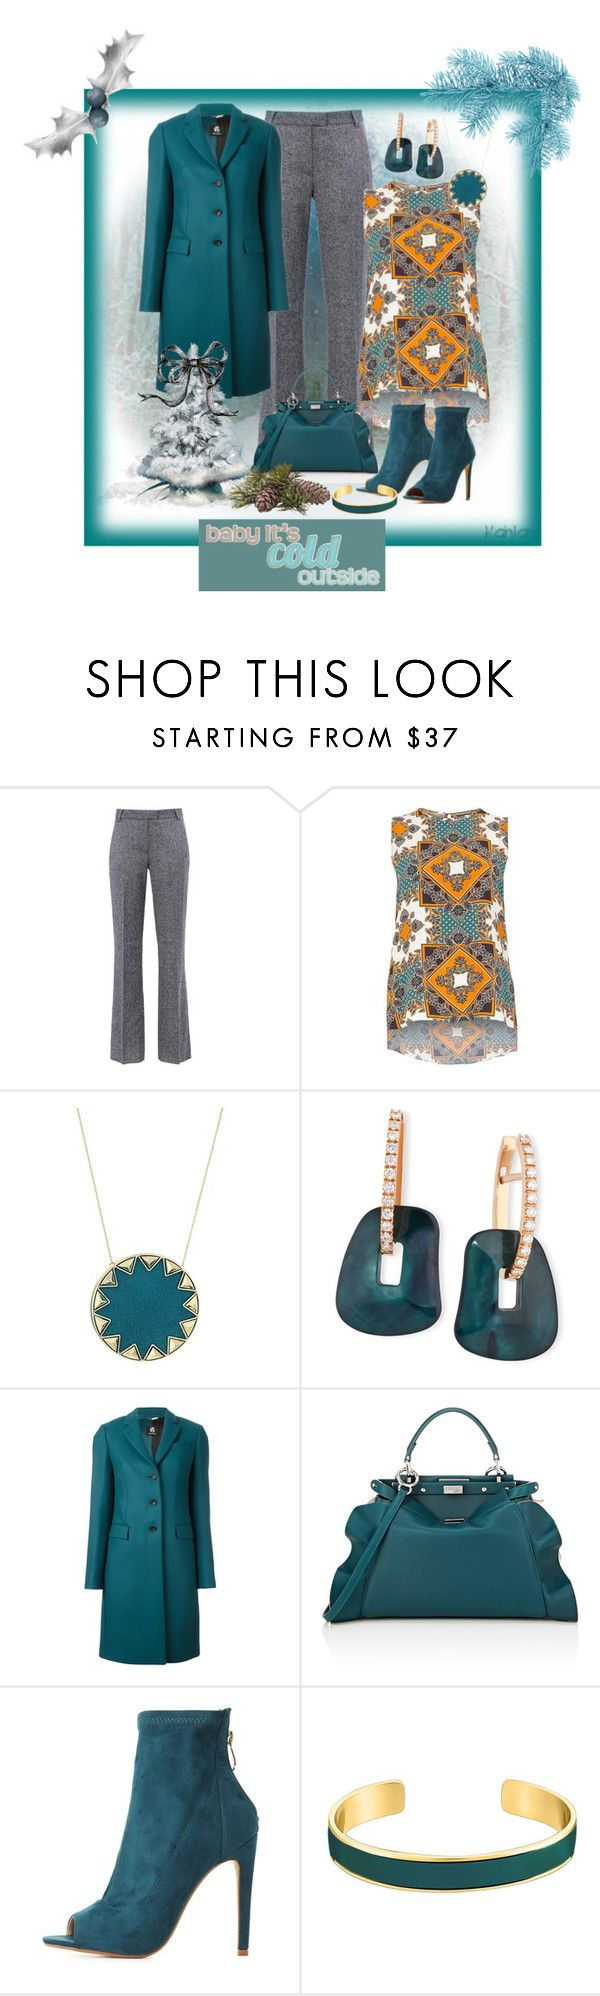 """Untitled #587"" by rosiepeter ❤ liked on Polyvore featuring Barbara Bui, Dorothy Perkins, House of Harlow 1960, Mattioli, Paul Smith, Fendi, Cape Robbin, VANINA and November"